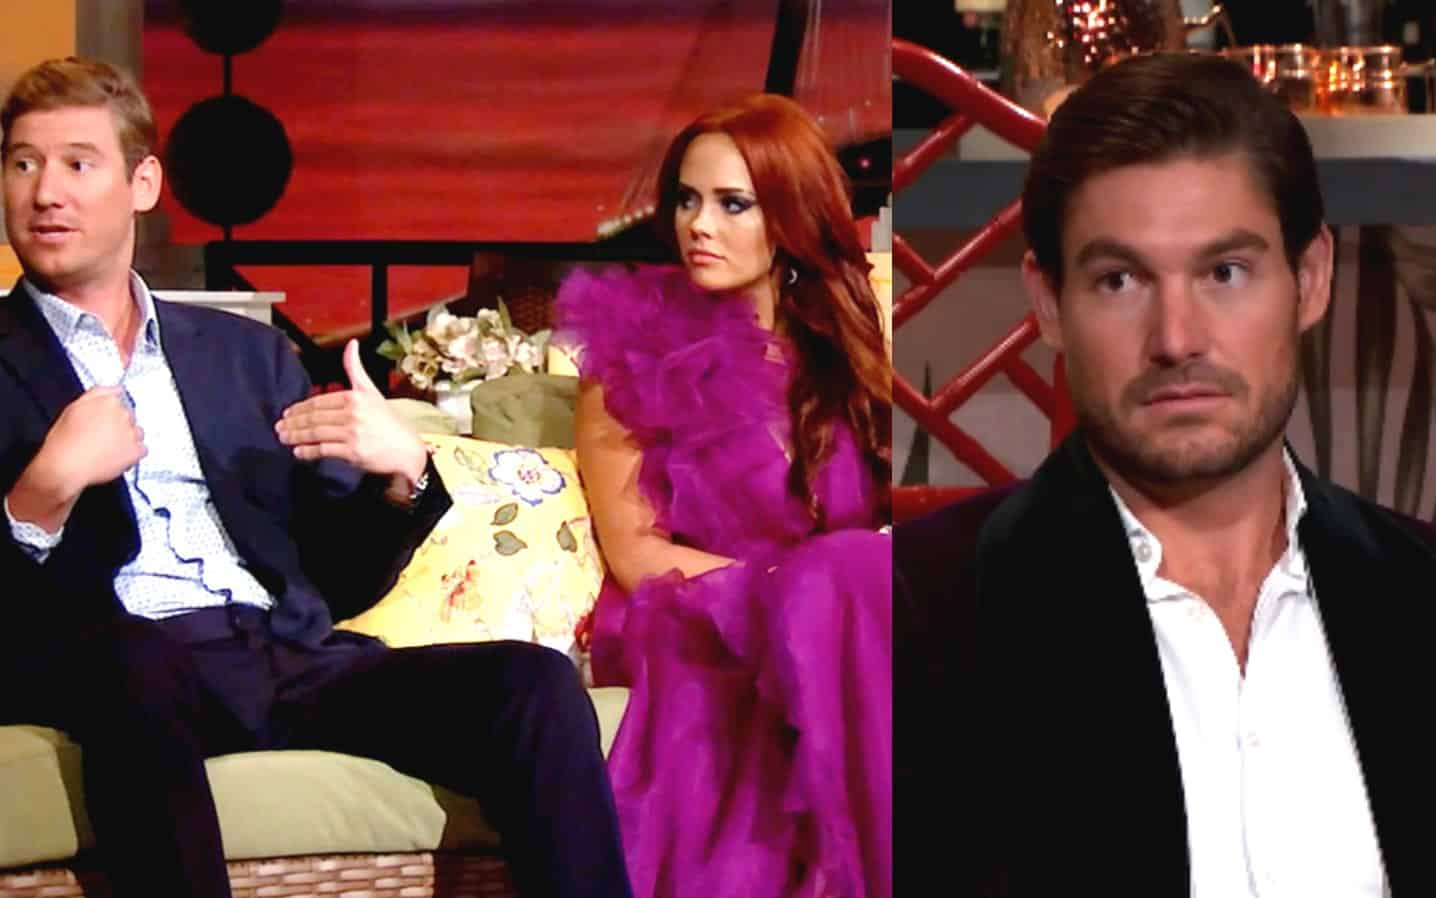 VIDEO: Watch the Southern Charm Reunion Trailer! Kathryn Dennis' Sobriety is Questioned by Costars as Adderall Accusations are Made Against Craig, Plus Austen Reveals If He's Back With Madison